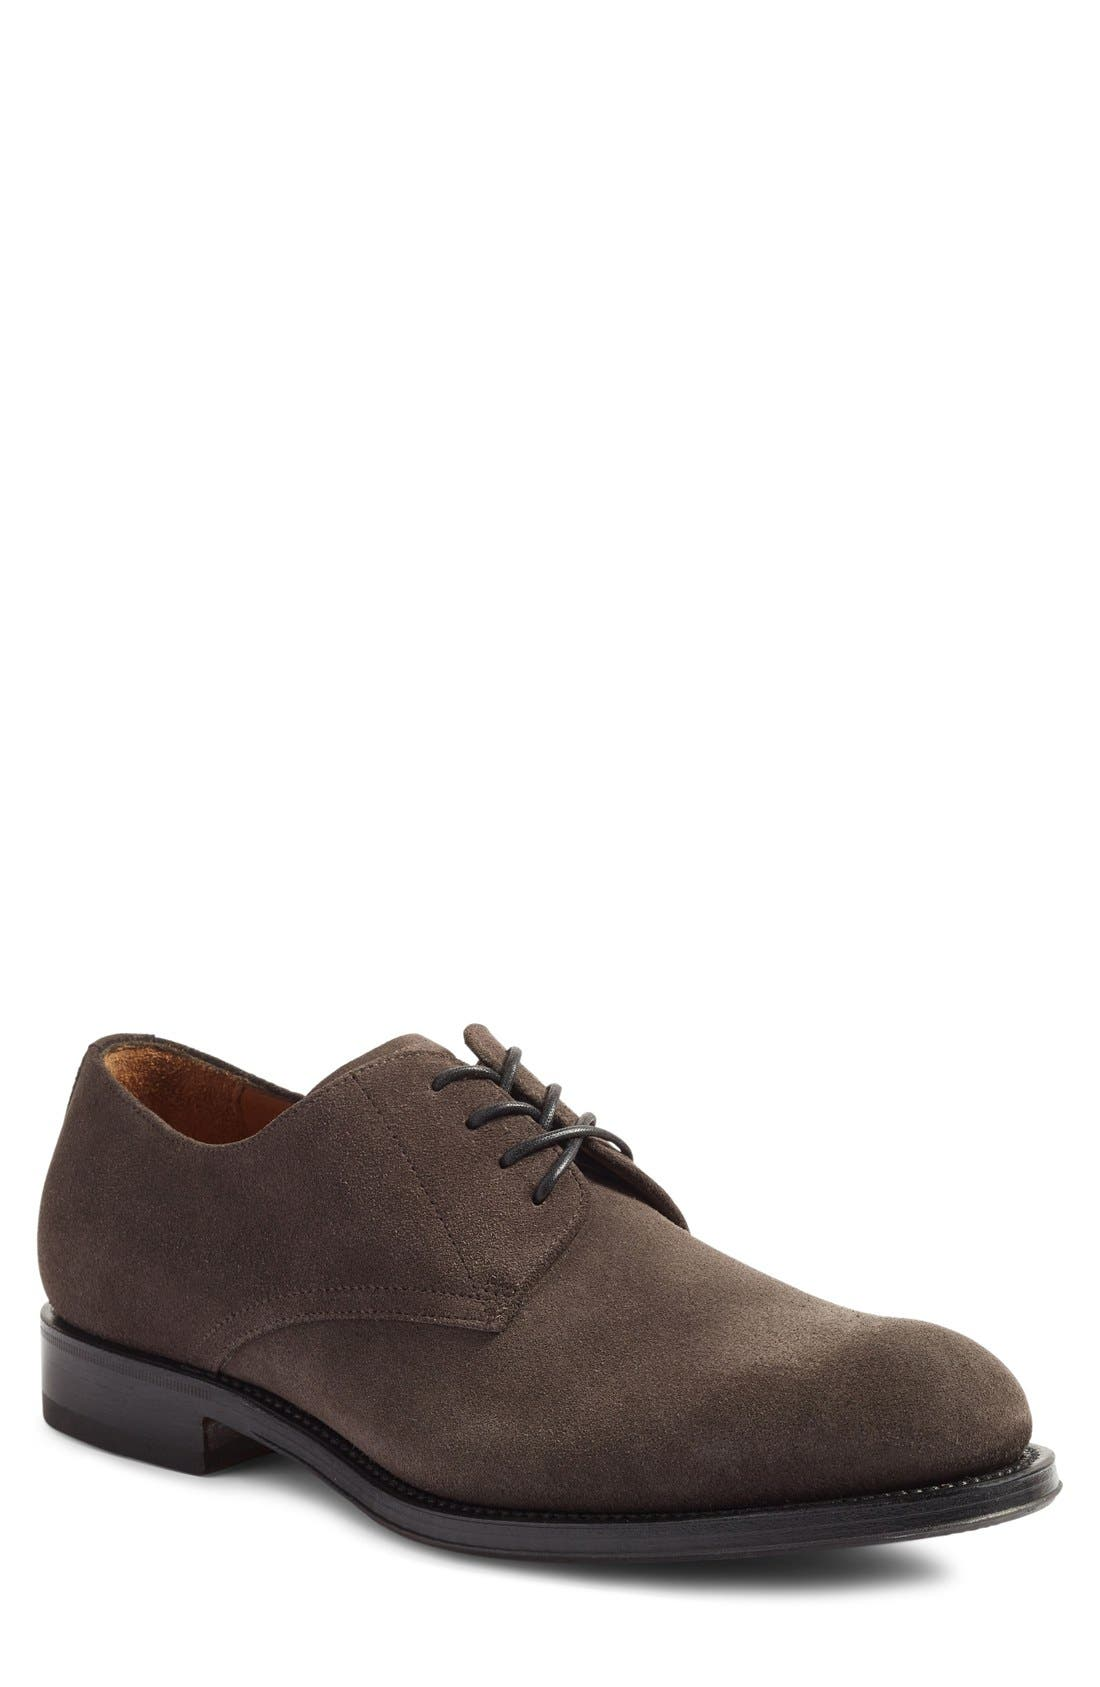 Aquatalia 'Vance' Plain Toe Derby (Men)